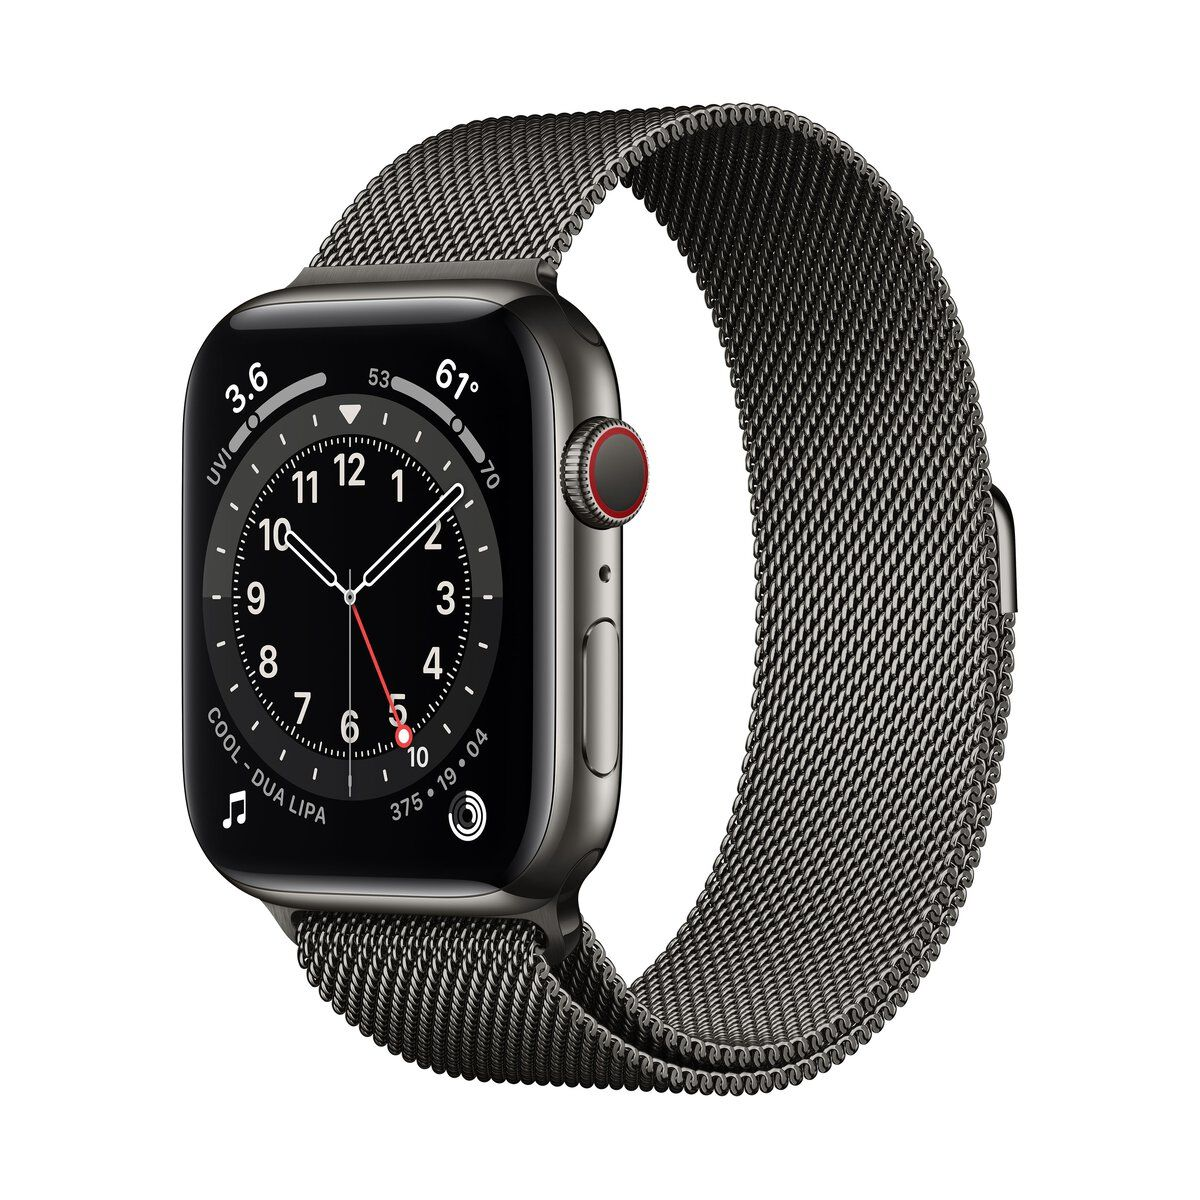 Apple Watch (Series 6) GPS+Cellular 44 mm-es grafitszínű rozsdamentesacél tok, grafitszínű milánói szíj